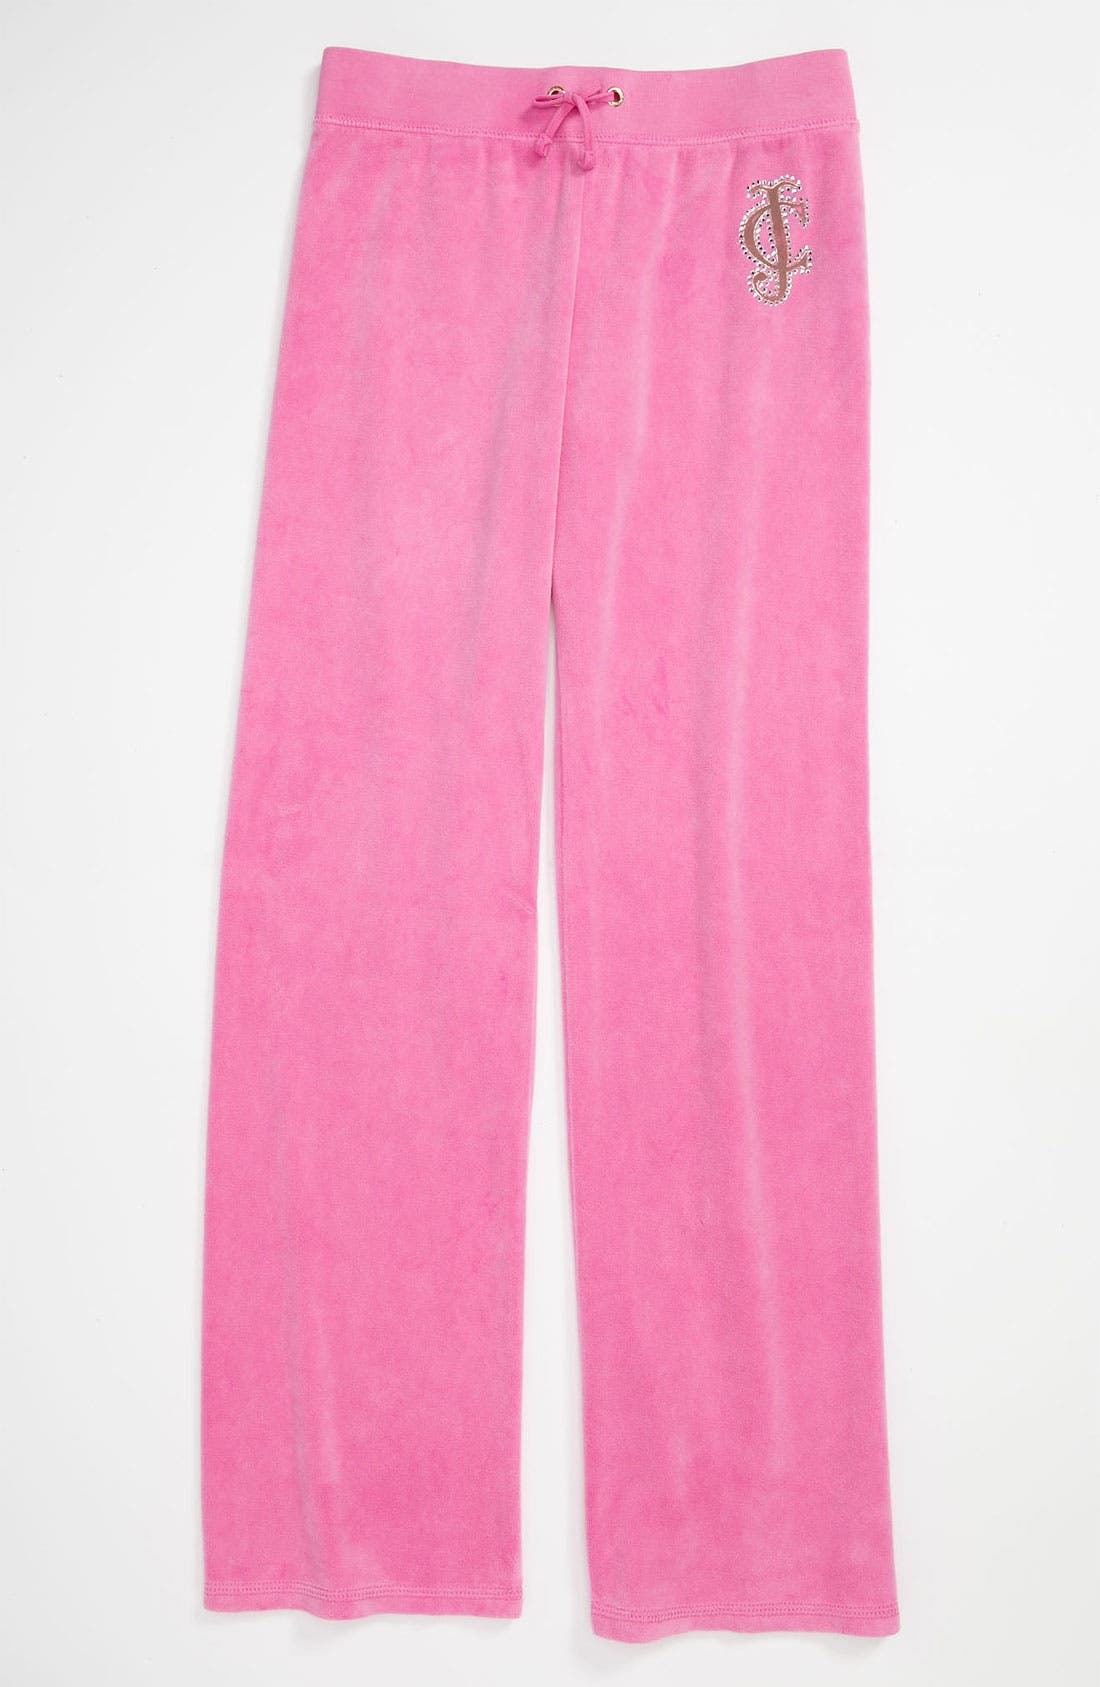 Alternate Image 1 Selected - Juicy Couture Velour Pants (Little Girls & Big Girls)